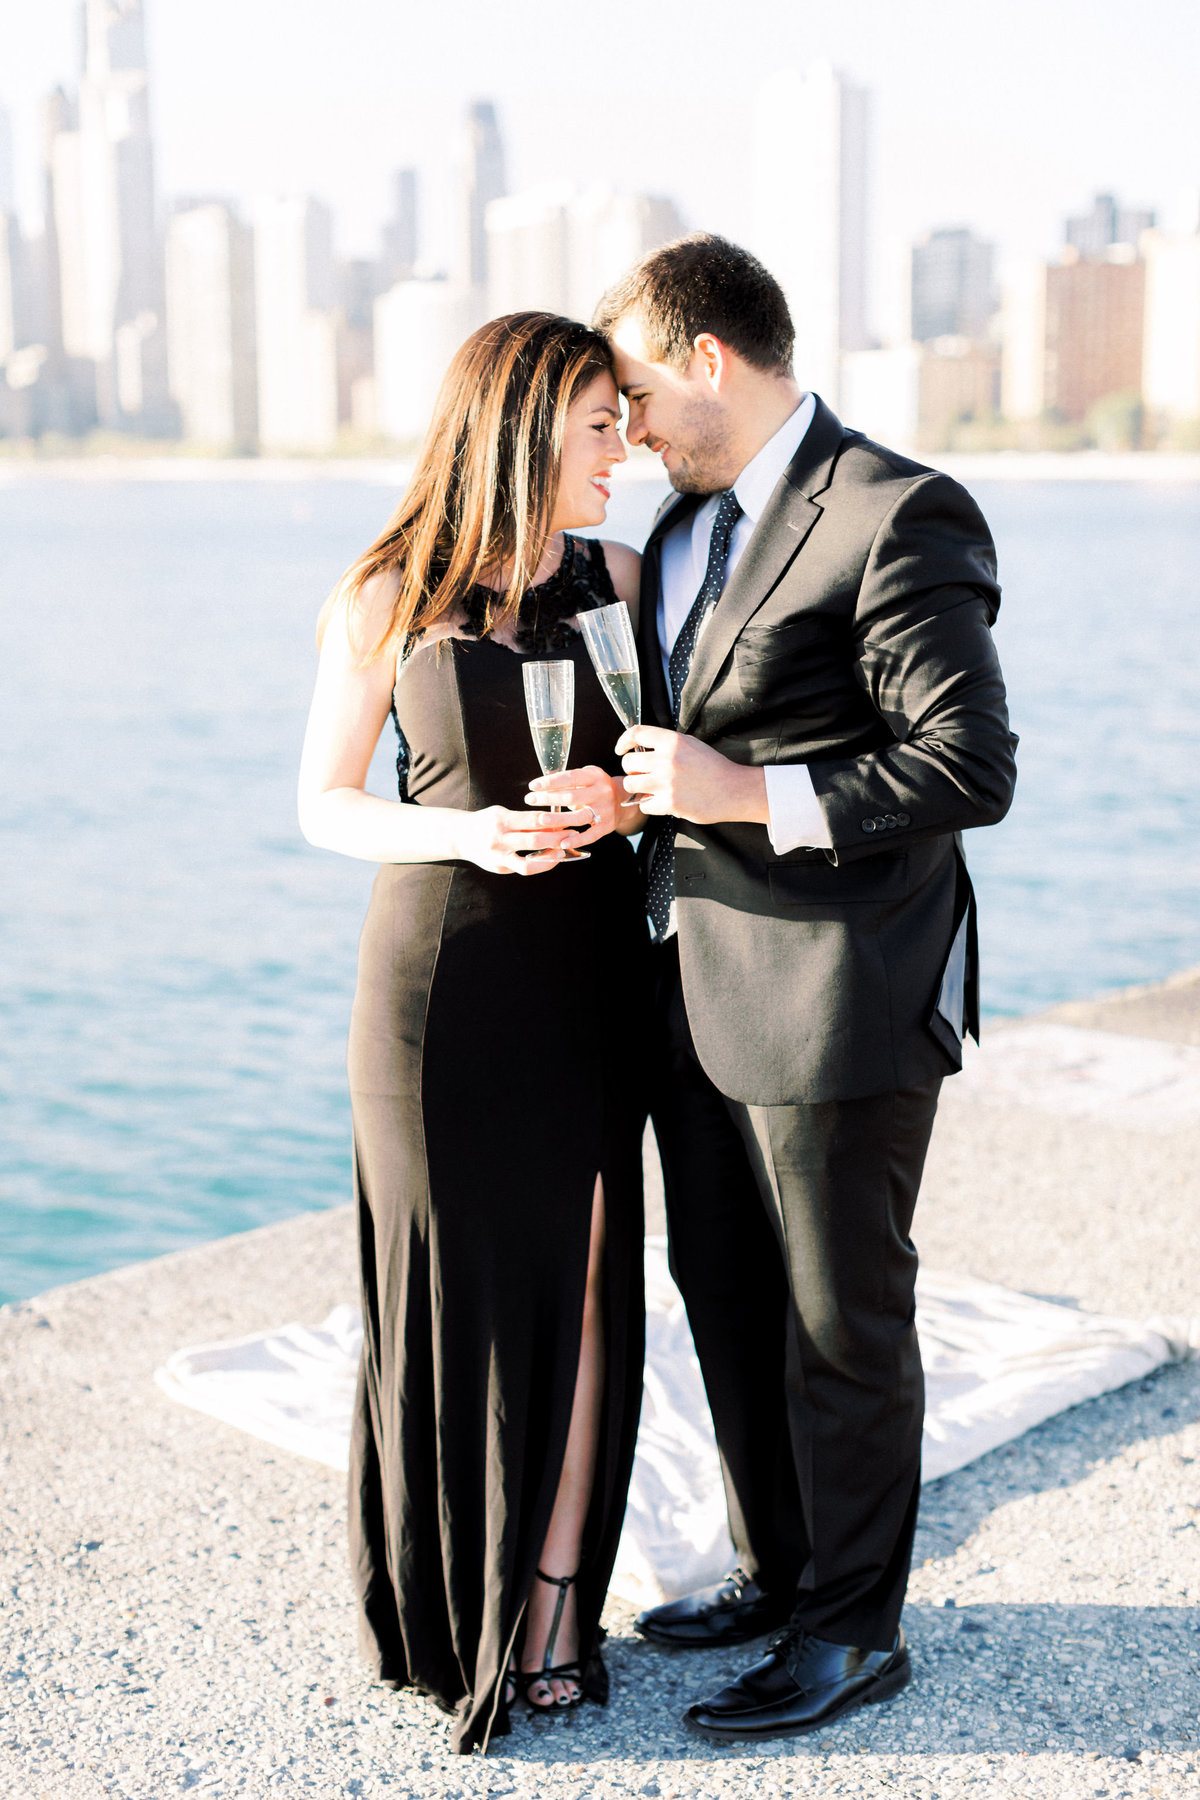 TiffaneyChildsPhotography-ChicagoWeddingPhotographer-Alana+Giancarlo-NorthAvenueBeachUnionStationEngagementSession-64